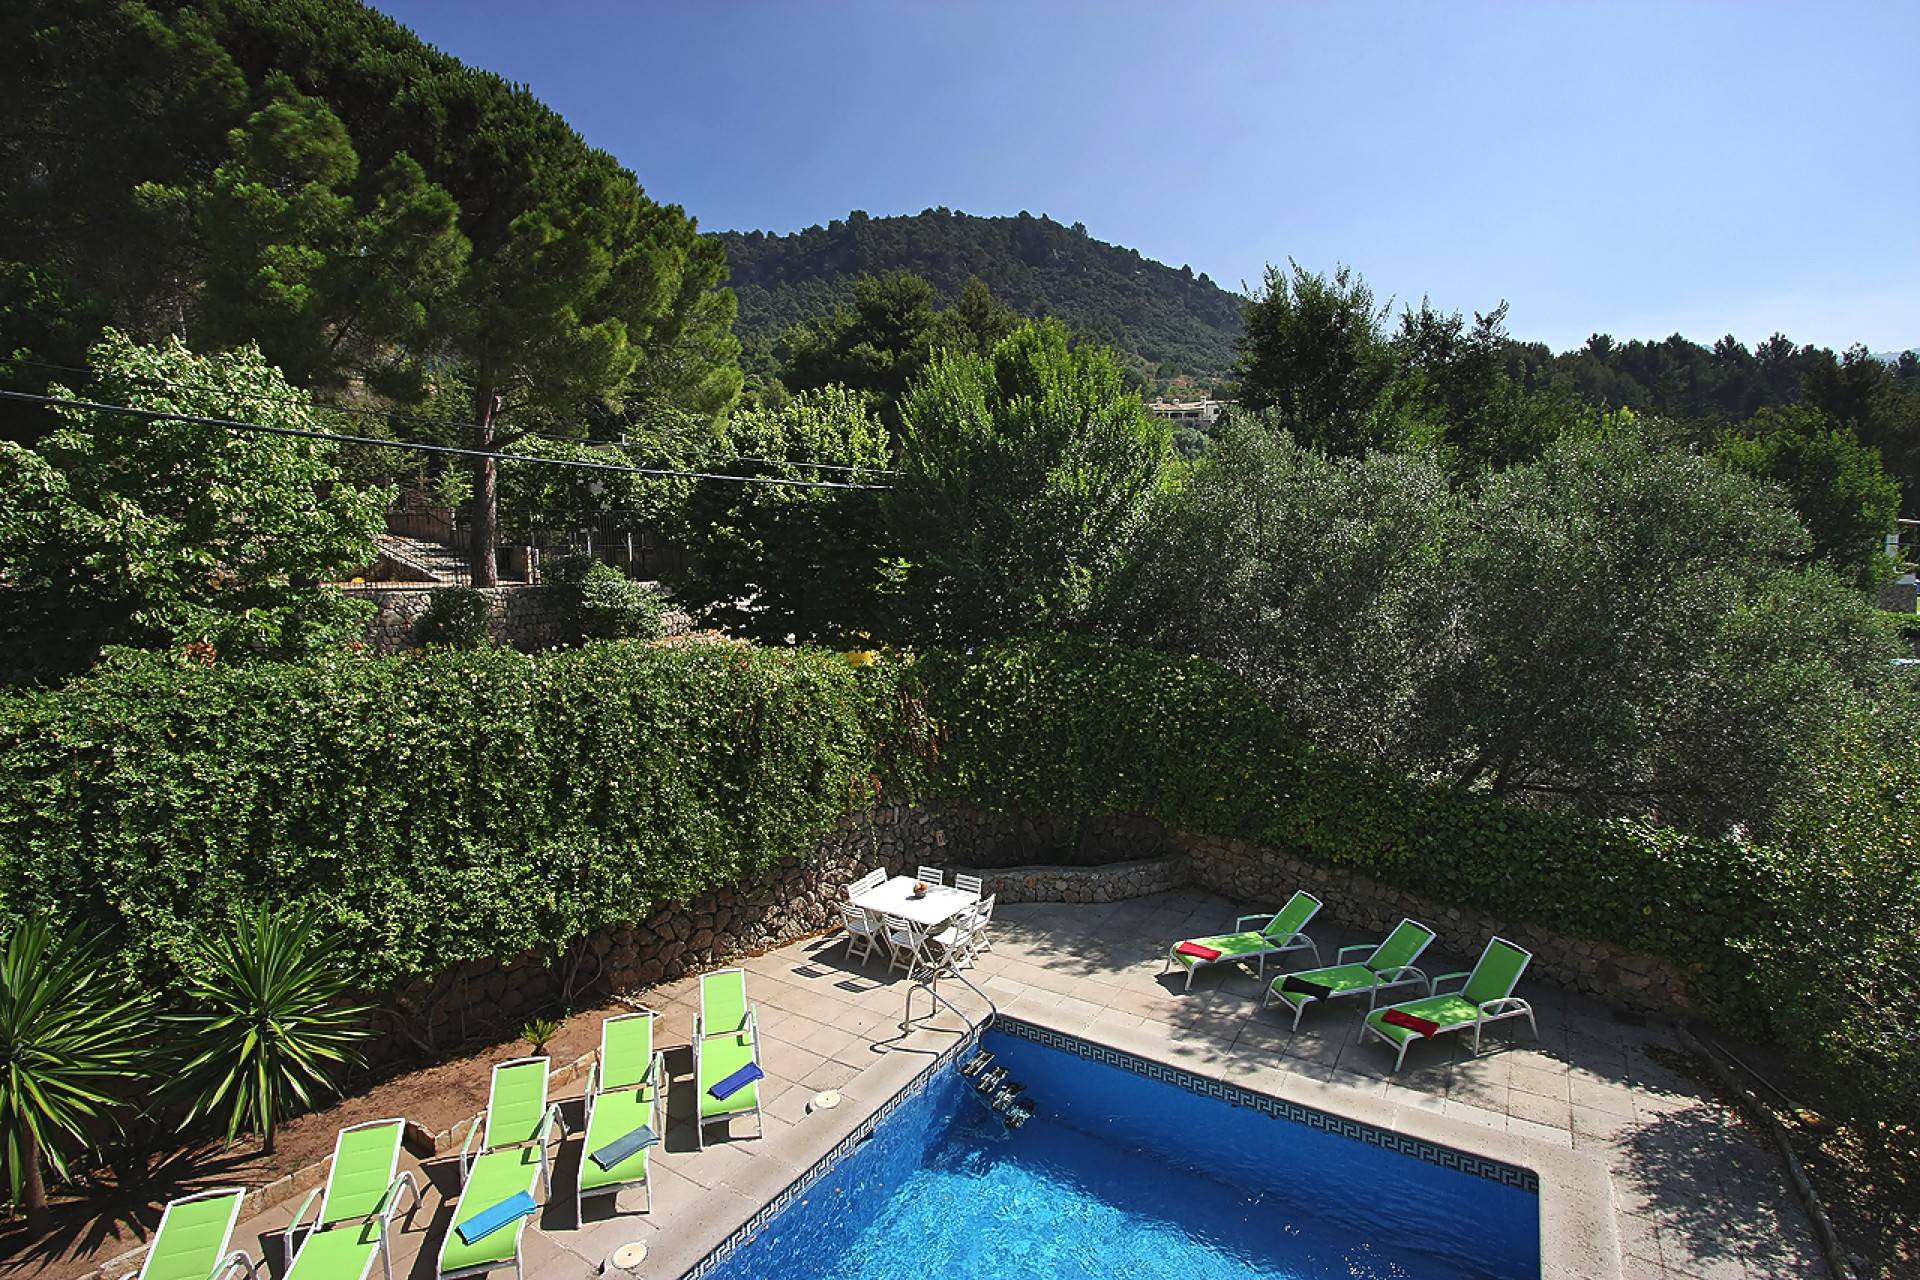 01-134 Cozy holiday home Mallorca west Bild 5